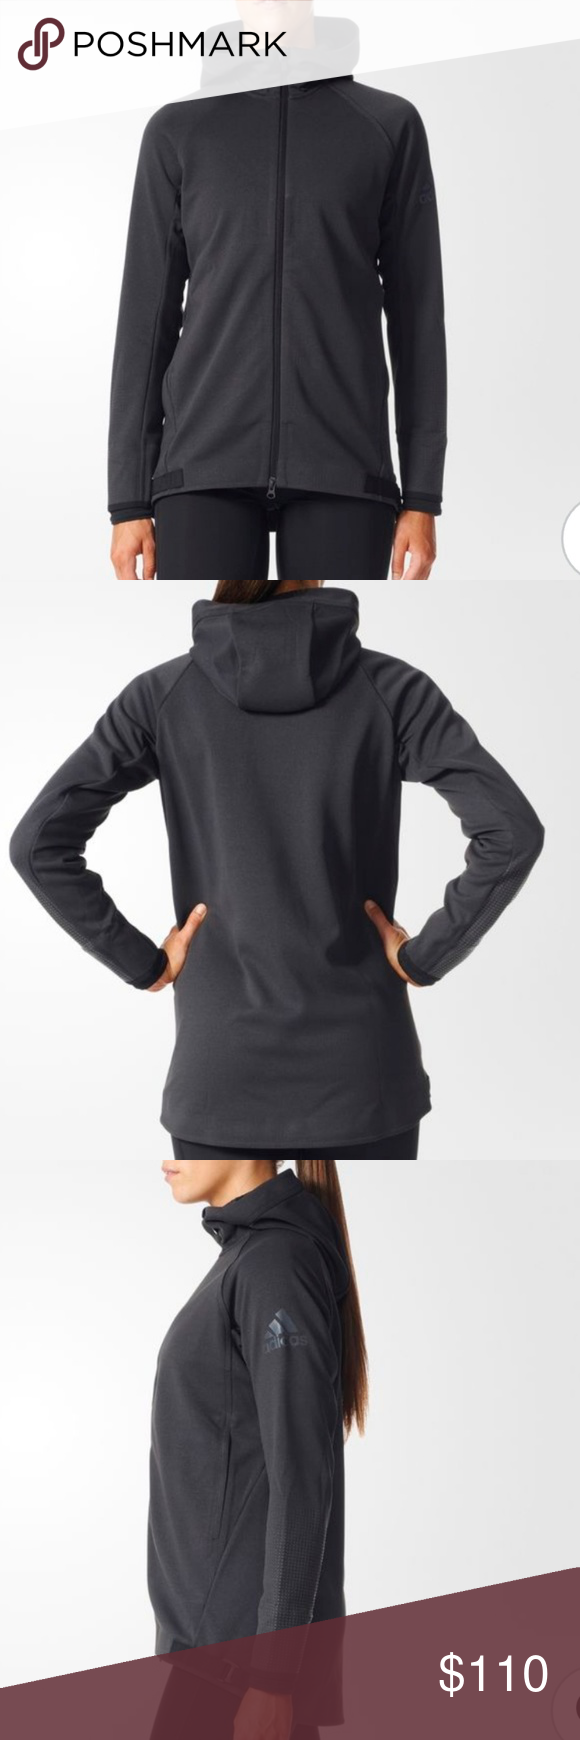 Predownload: Adidas Climaheat Hoodie Slim Fit Hoodie Polartec Reflective Design On Sleeves Front Zip Attached Hood New Adidas Jackets Outfits Fashion Hooded Jacket [ 1740 x 580 Pixel ]